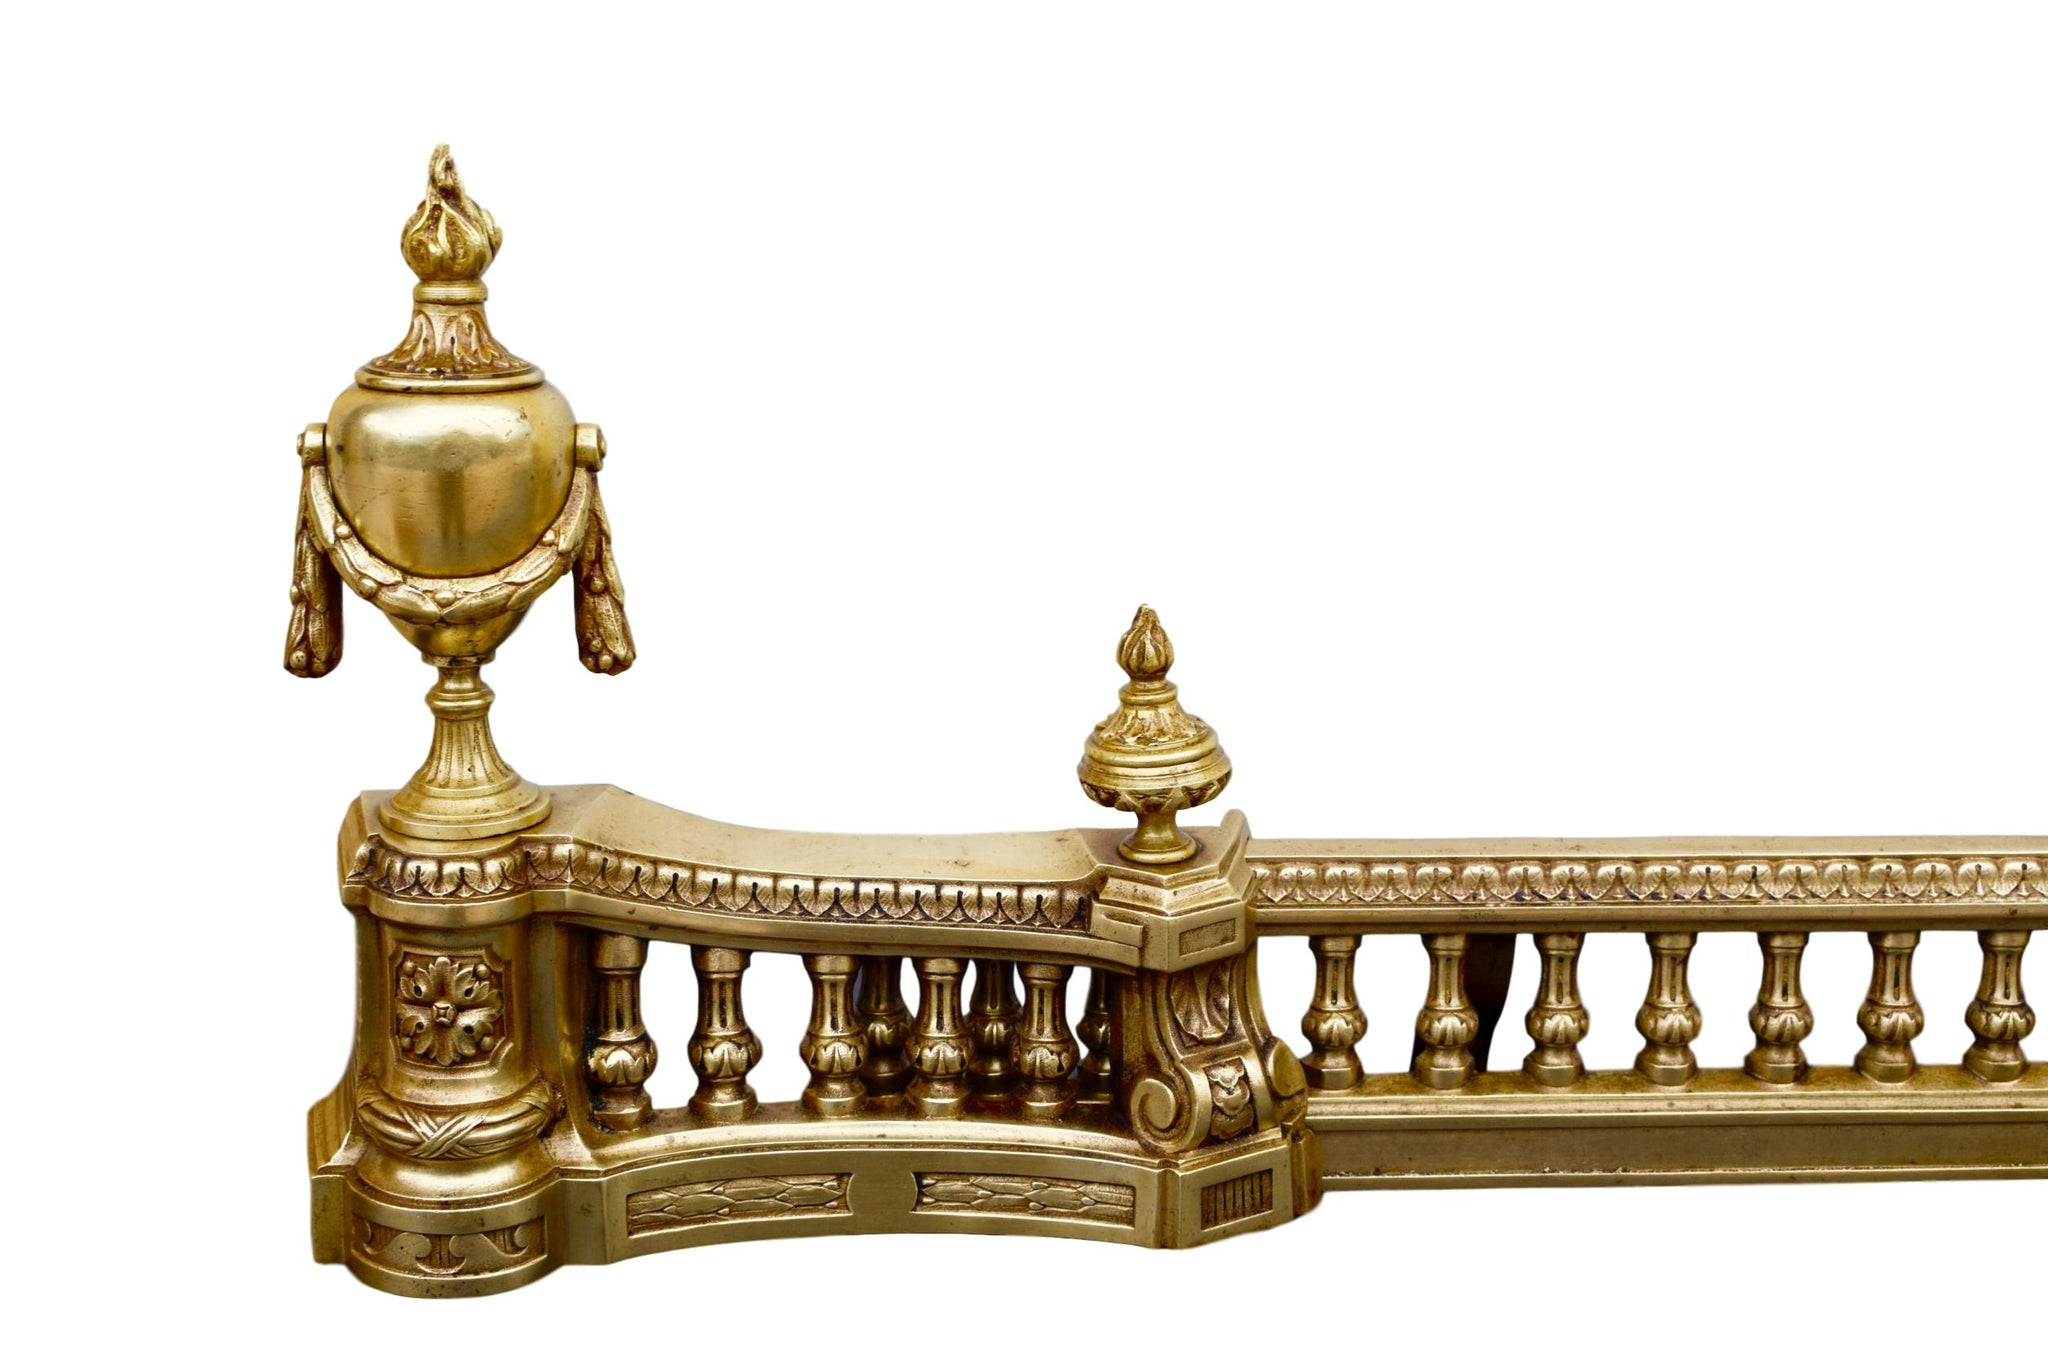 French Antique Ormolu Brass Louis XVI Style Andirons - French Chenets Fireplace Set - Pair of Andirons